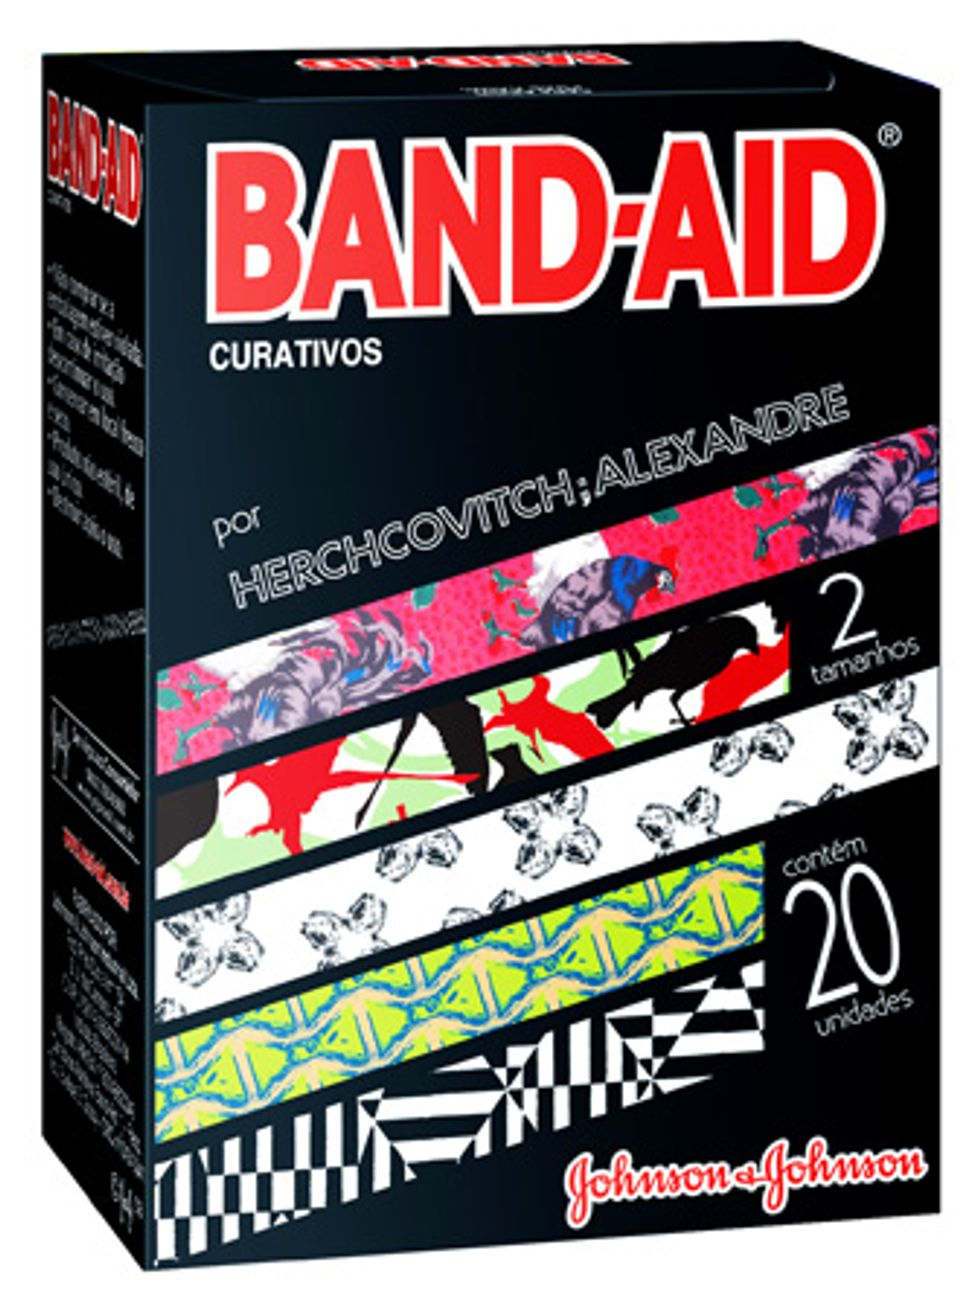 Alexandre Herchcovitch + Band-Aid Make Your Boo-Boos Beautiful